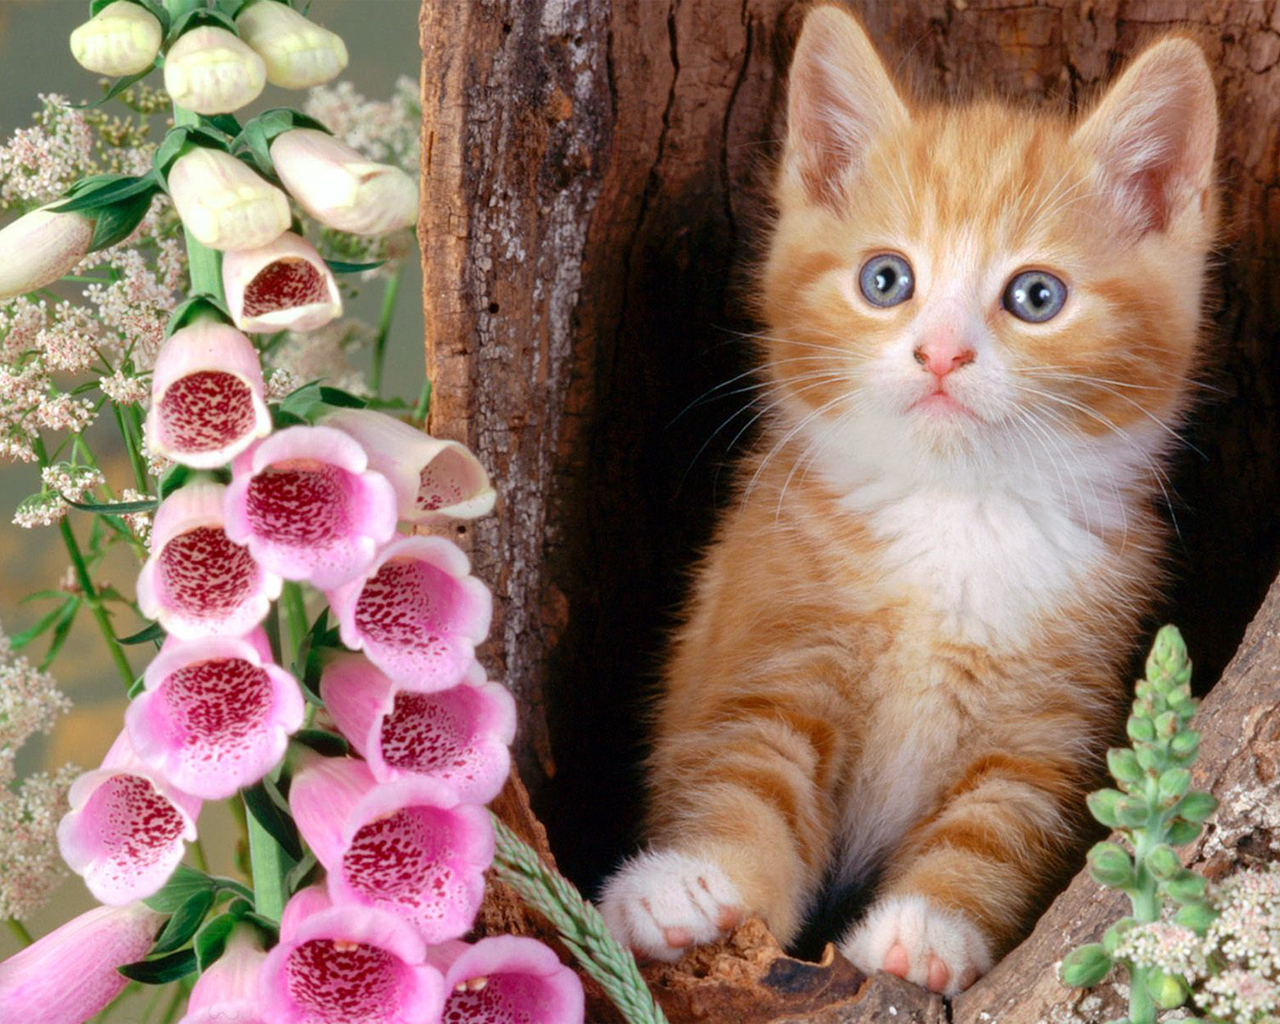 http://2.bp.blogspot.com/-1C3ZEw6Twgk/T_fI78kascI/AAAAAAAAEIM/wwAz8050Y0k/s1600/Beautiful+Cats+Hd+Wallpapers_3.jpg